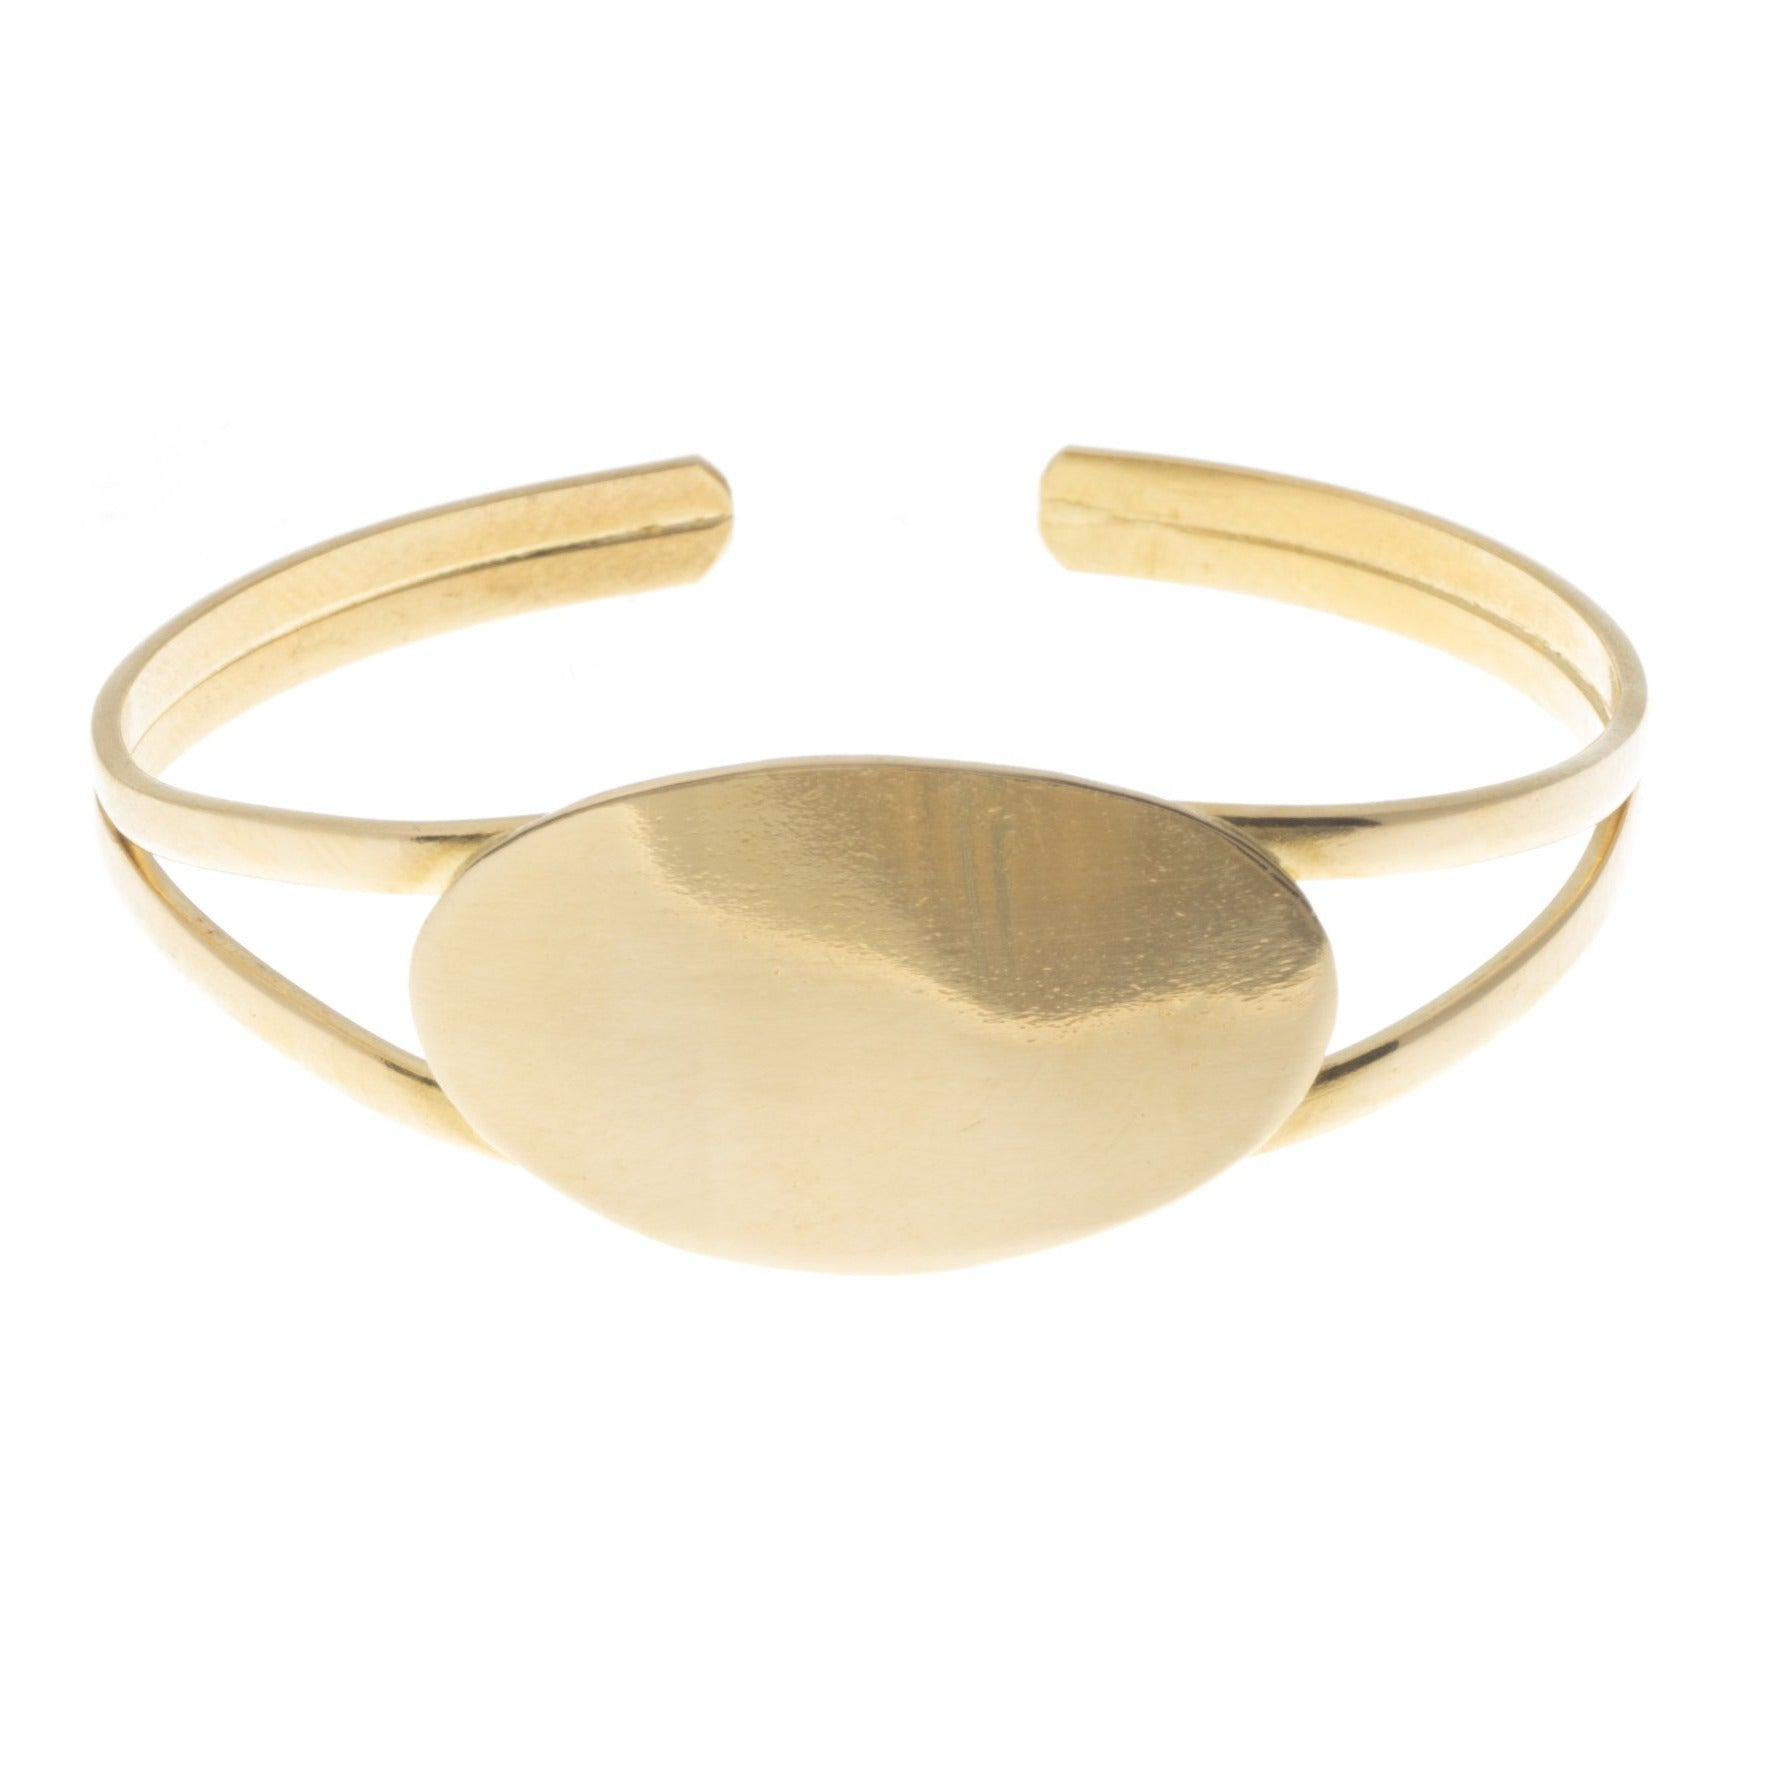 22ct Gold Openable Children's ID Style Bangle (10.4g) CB-7329